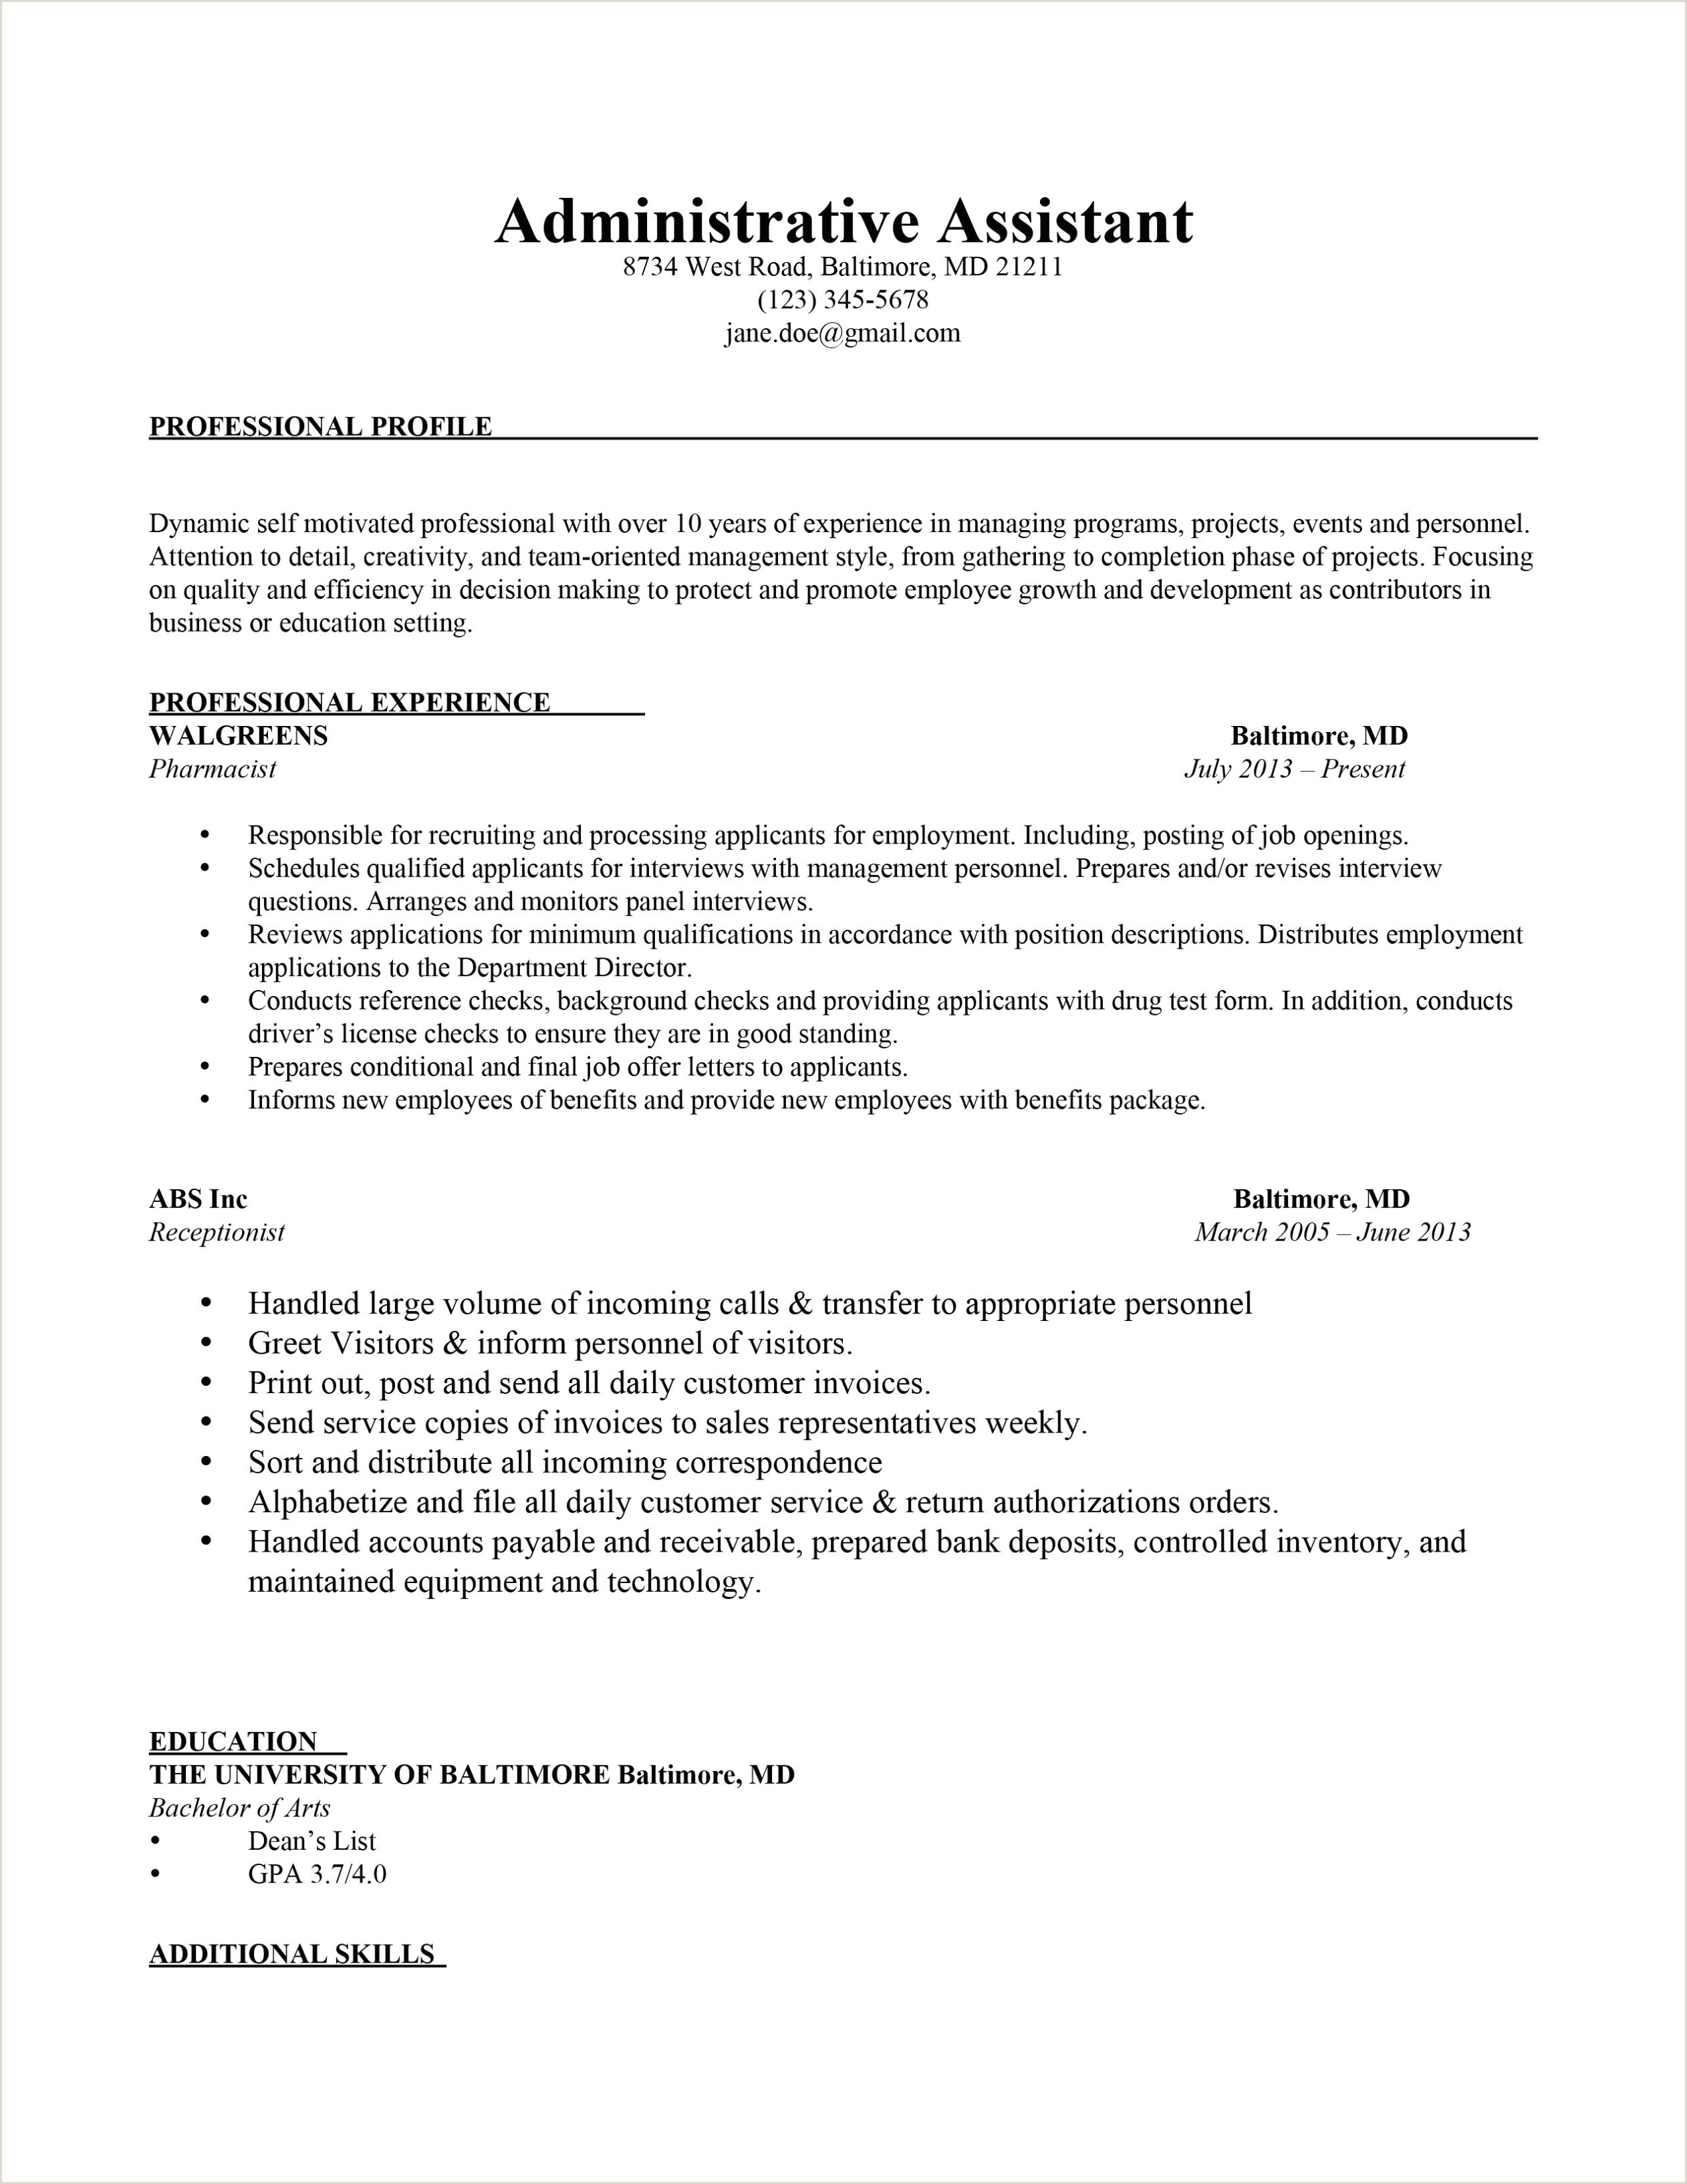 Cover Letter Exmaples Free Cover Letter for Interview Sample